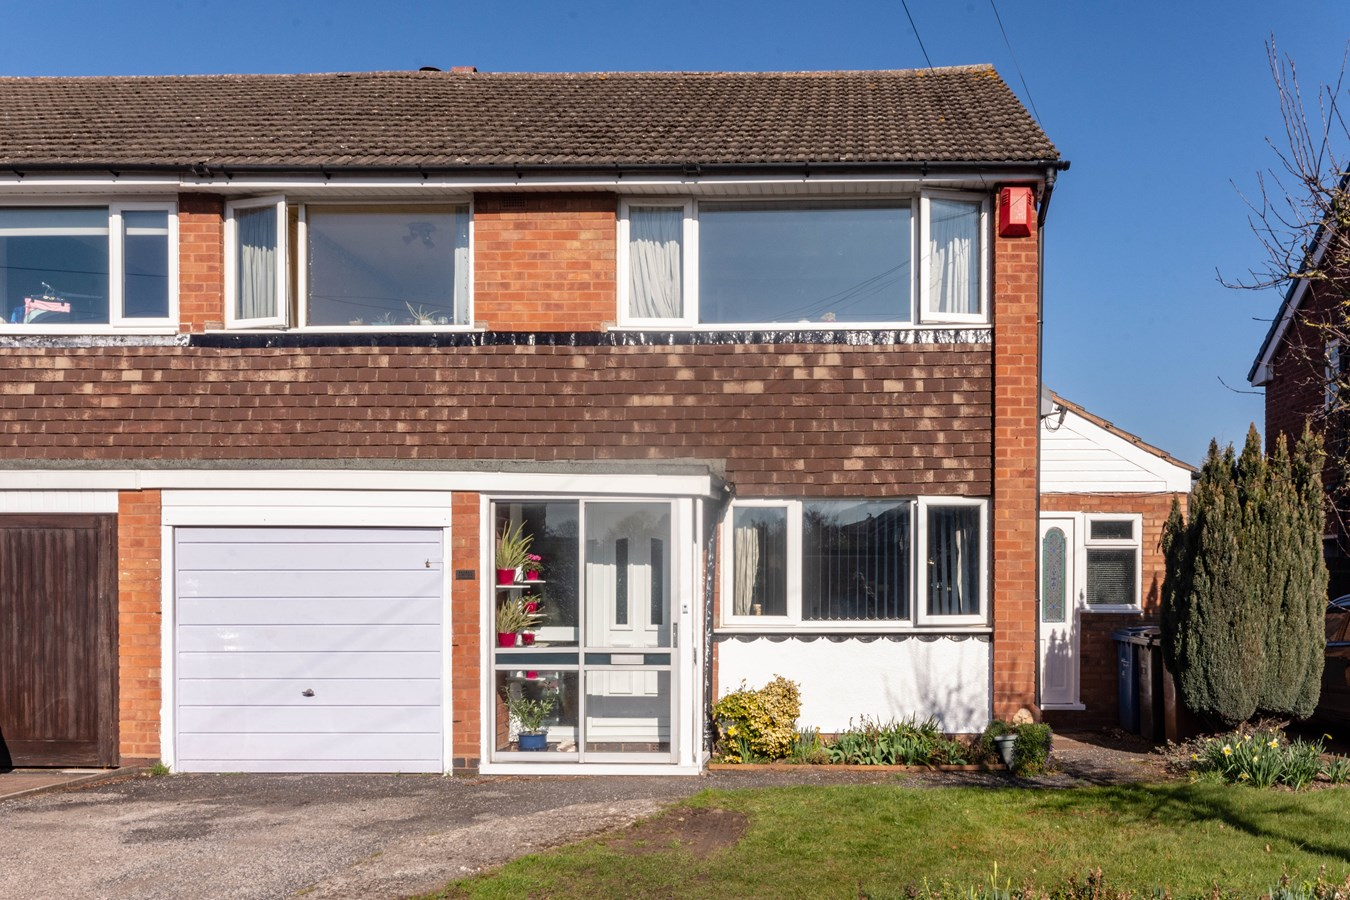 4 bedroom Semi-Detached House for sale in Lichfield